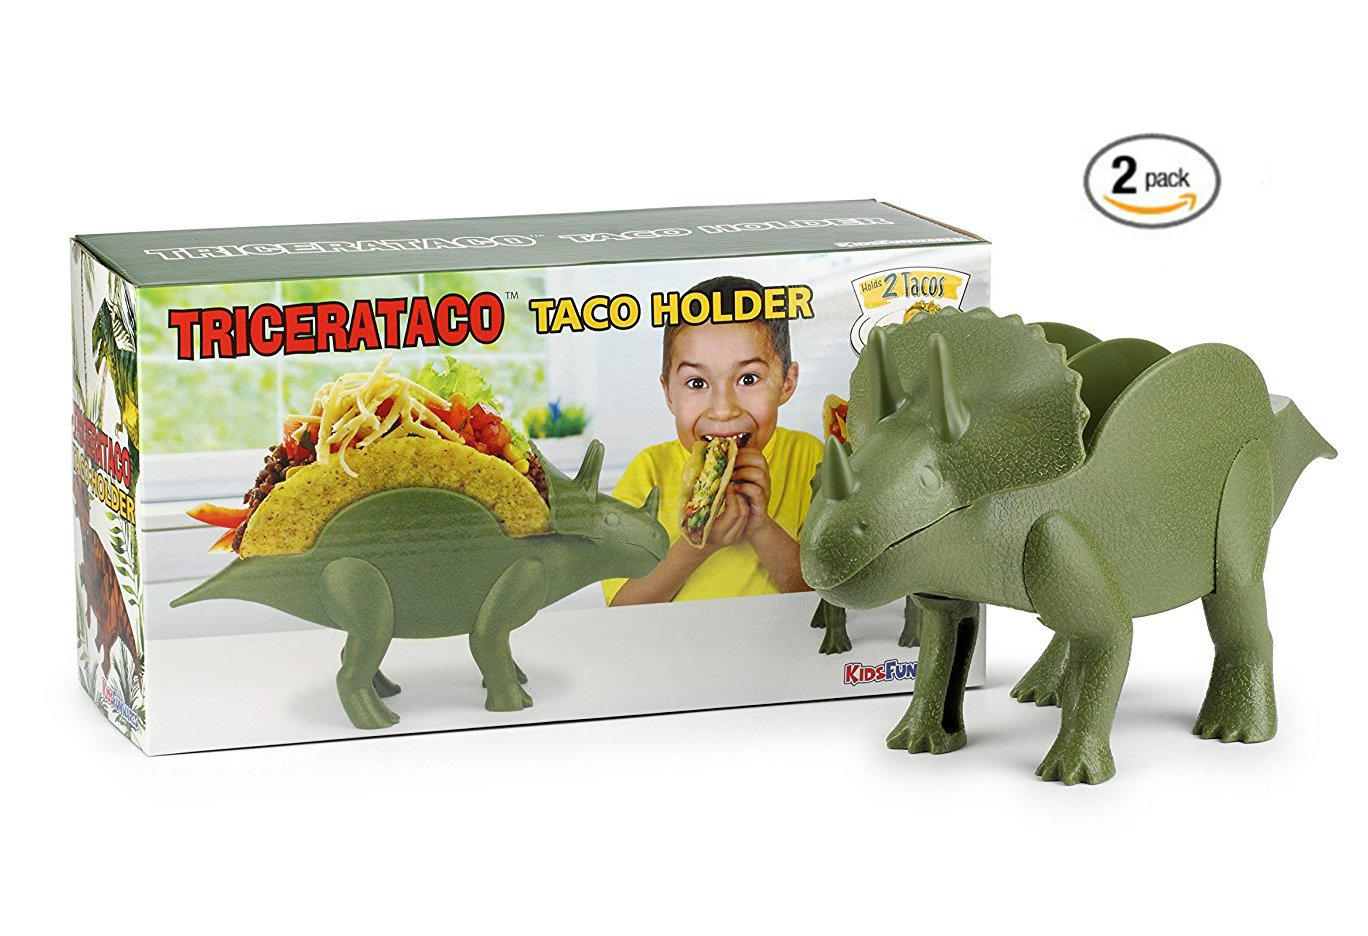 Kidsfunwares Tricerataco Taco Holder - Set of 2 - Prehistoric Taco Stand for Jurassic Taco Tuesdays and Dinosaur Parties - Holds 2 Tacos Each - The Perfect Gift for Kids